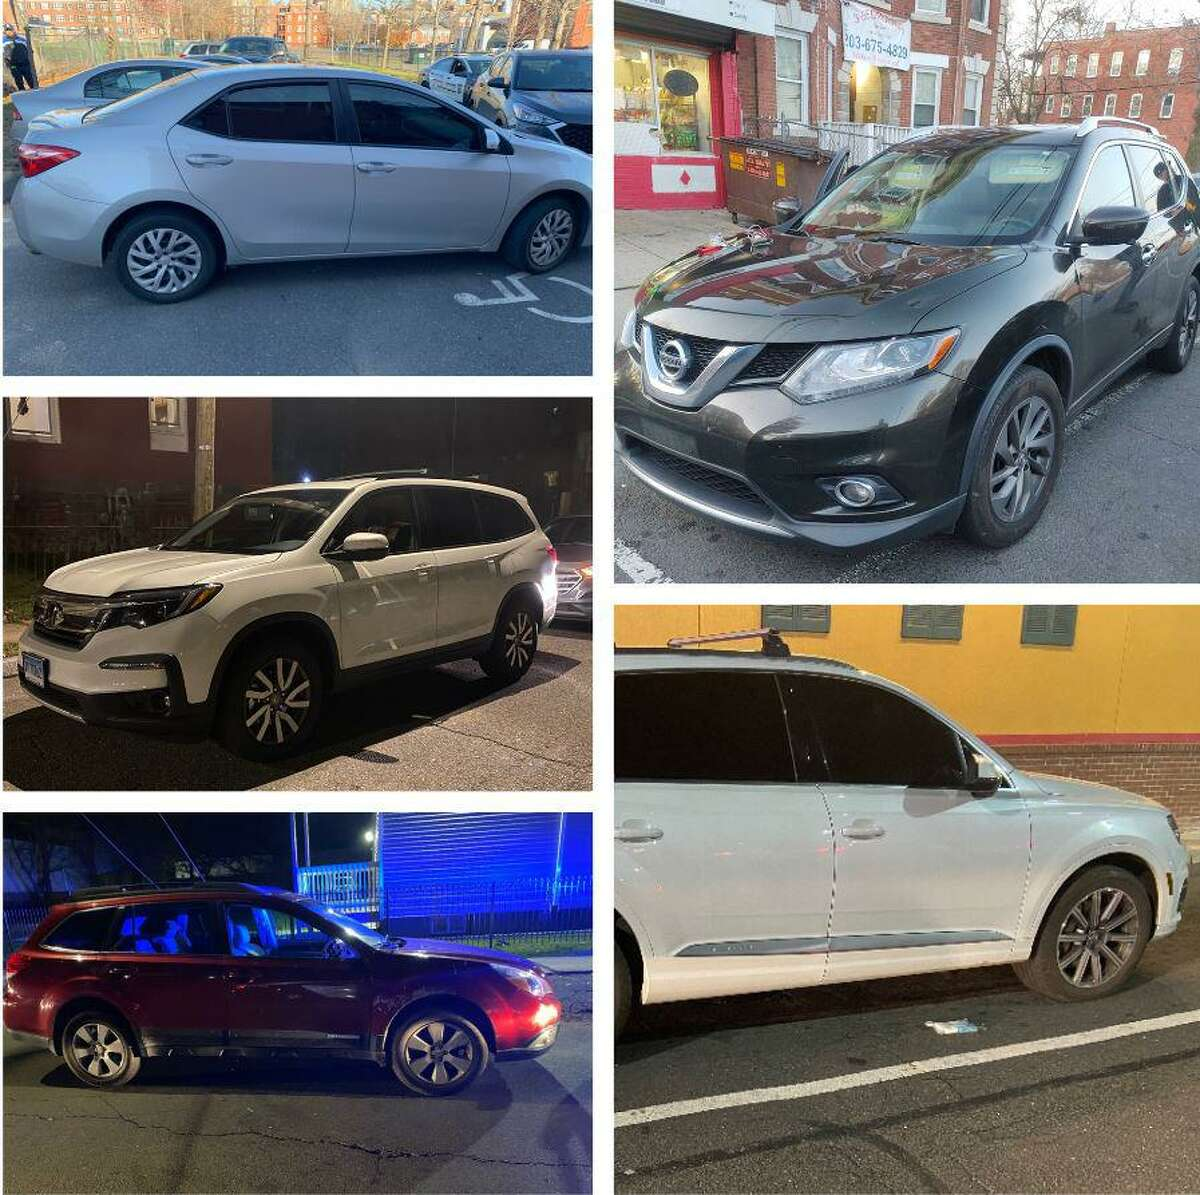 Cars seized during a targeted operation in Hartford, Conn., on Thursday, Dec. 3, 2020.